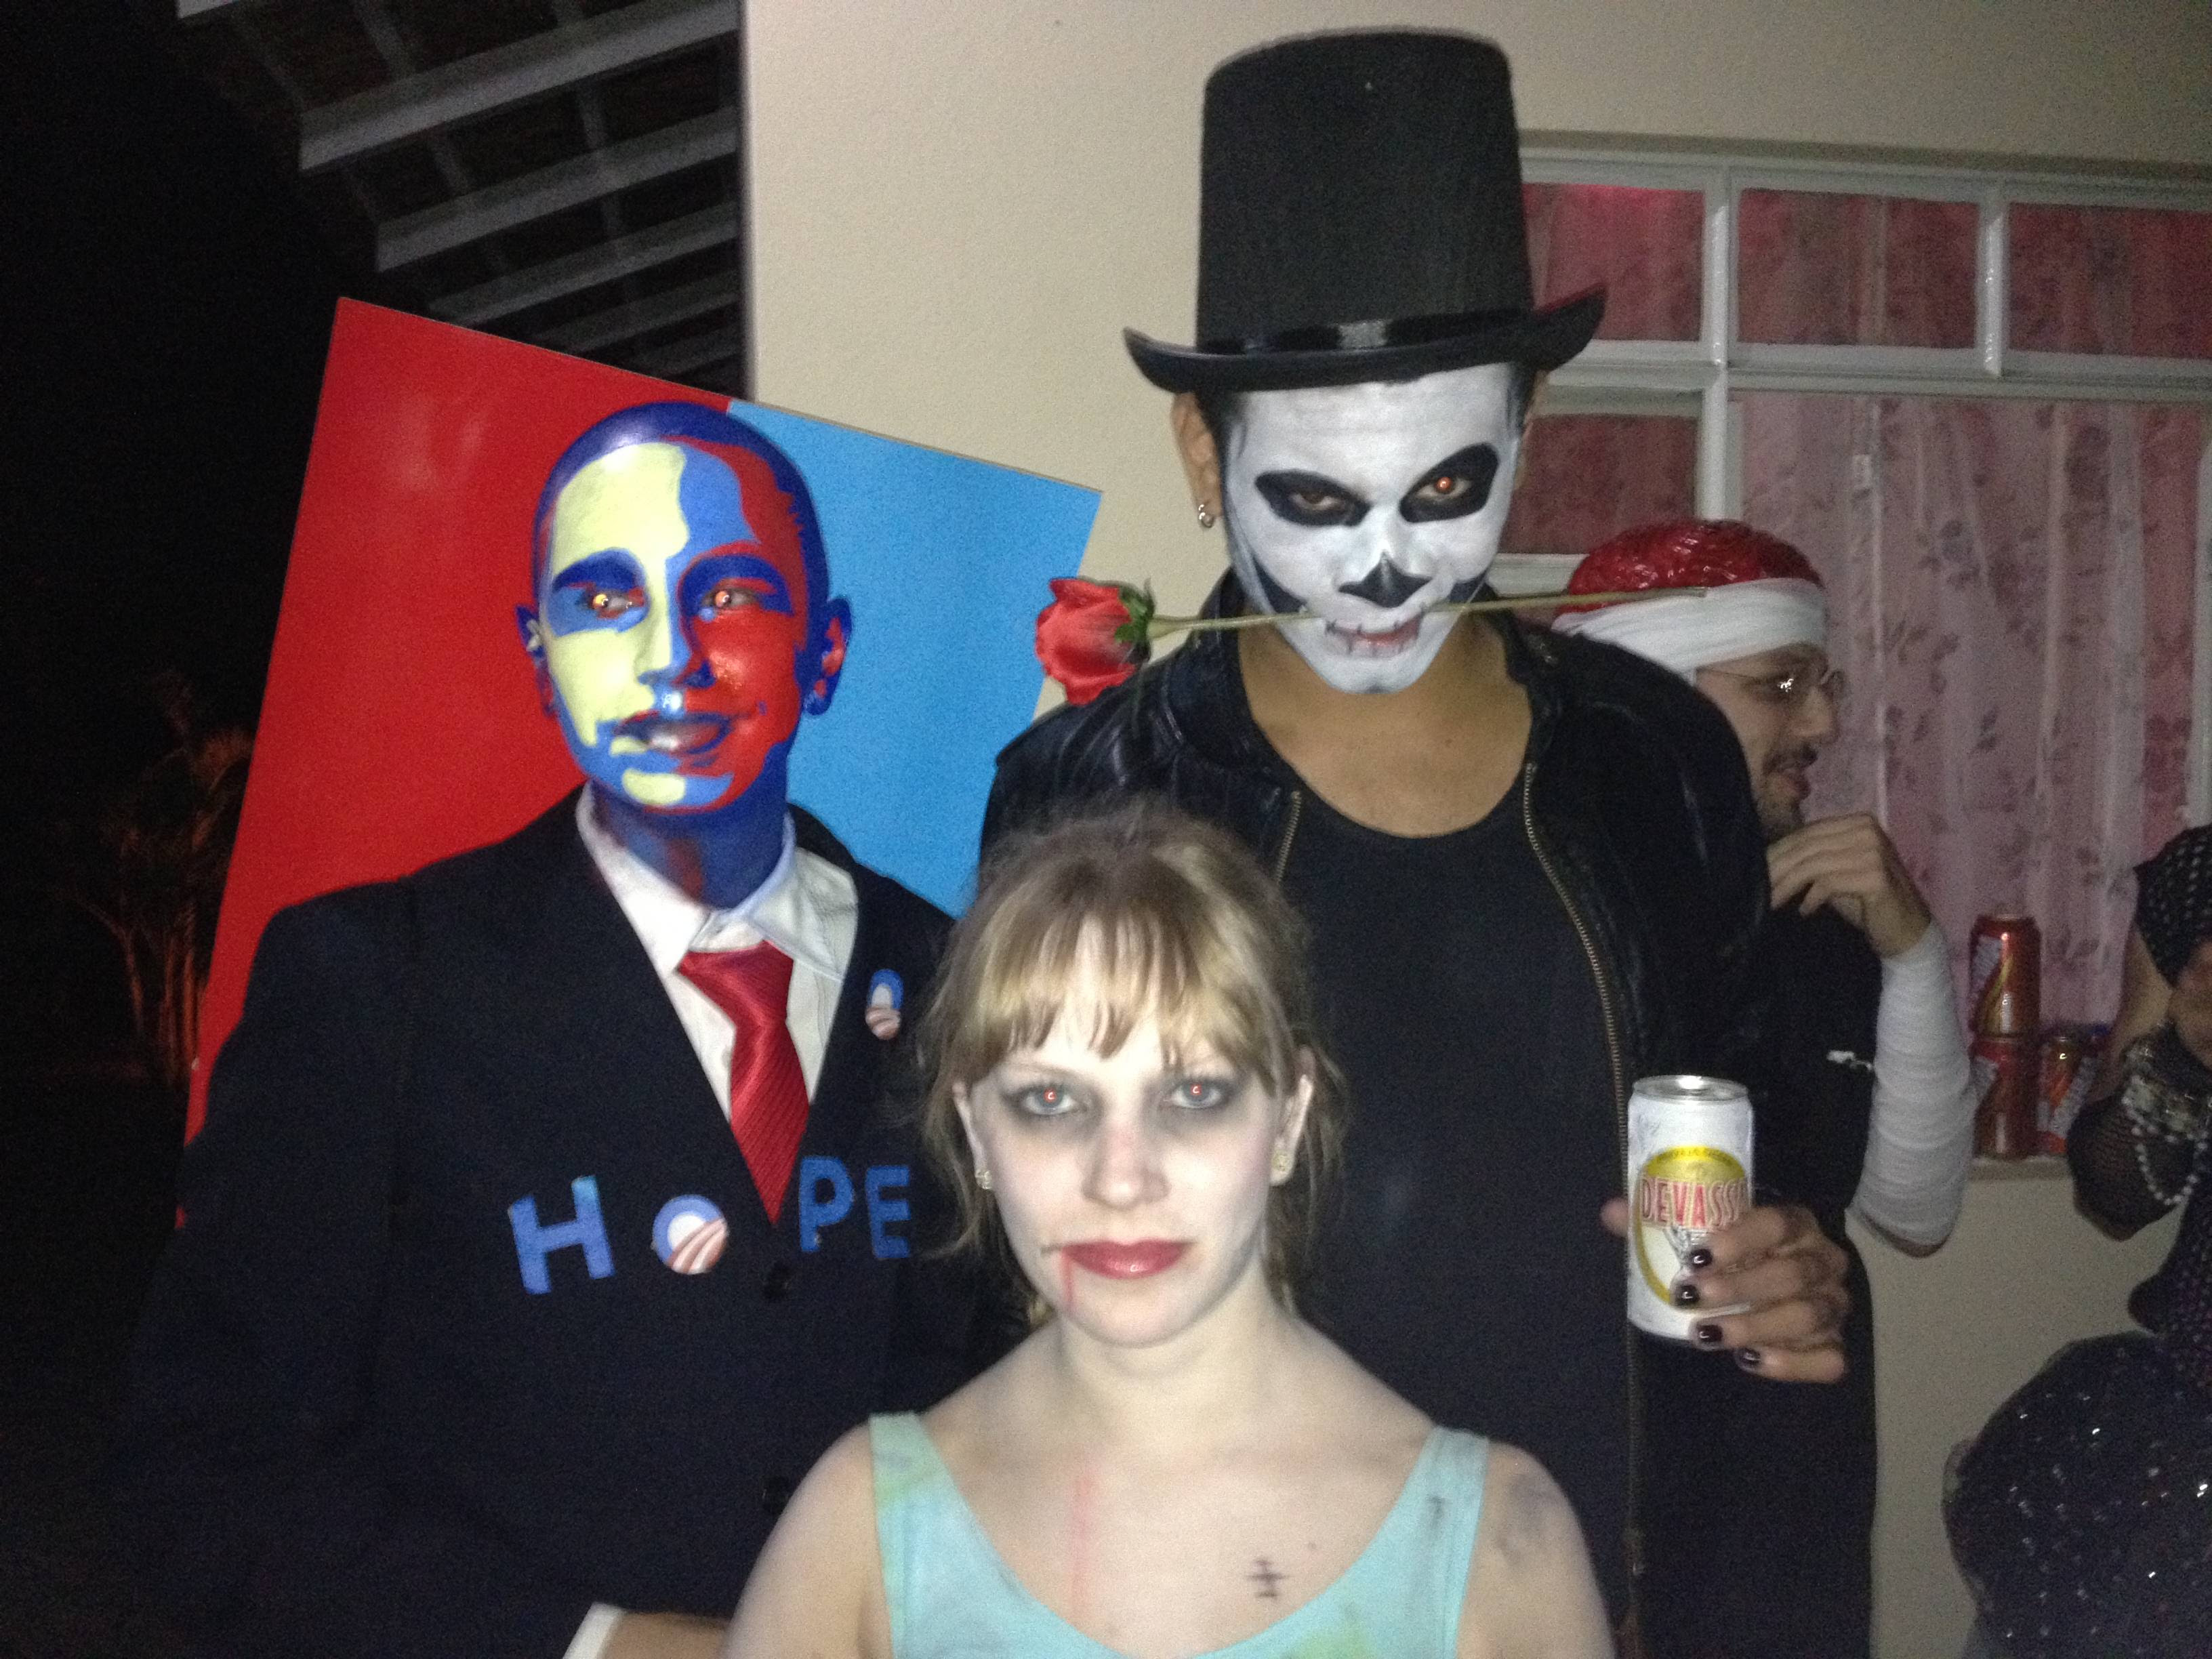 Obama poster Halloween costume found on Reddit (dialup warning